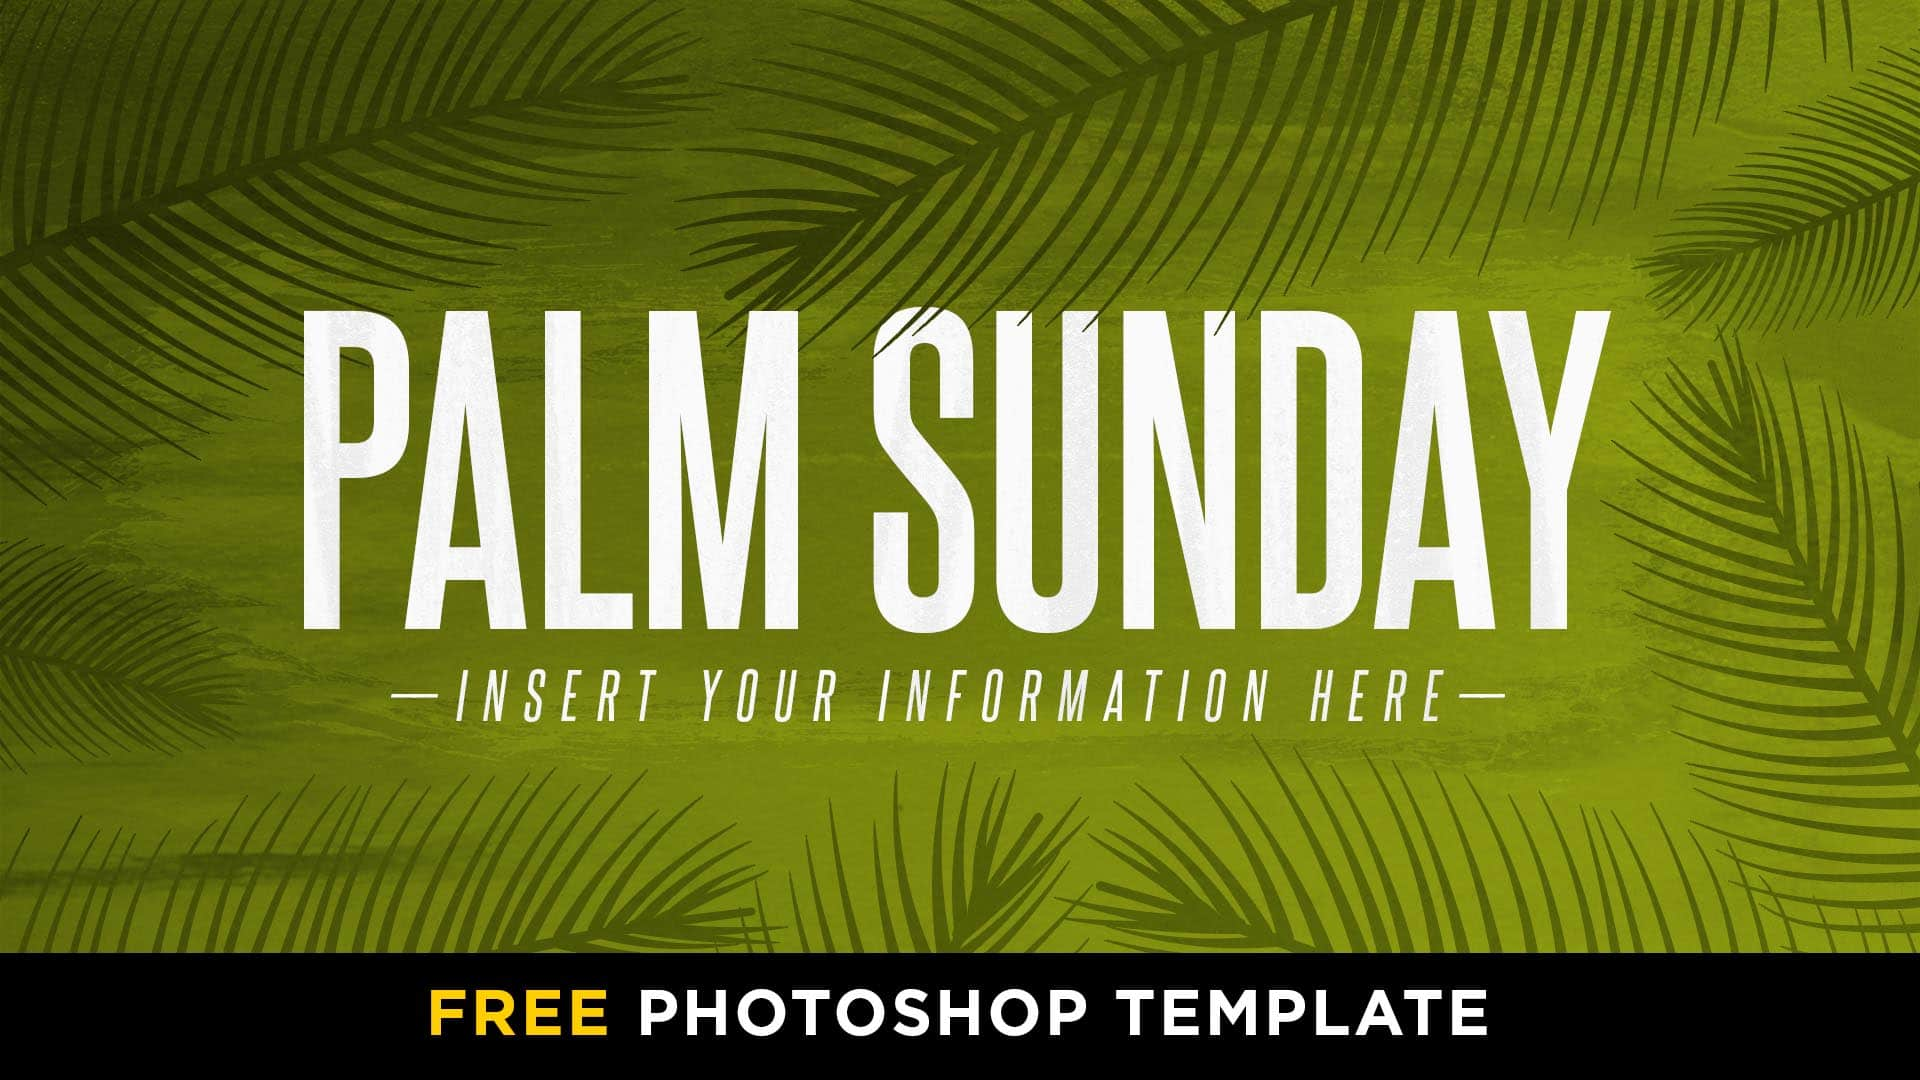 Free Palm Sunday Hot Paint Photoshop Template